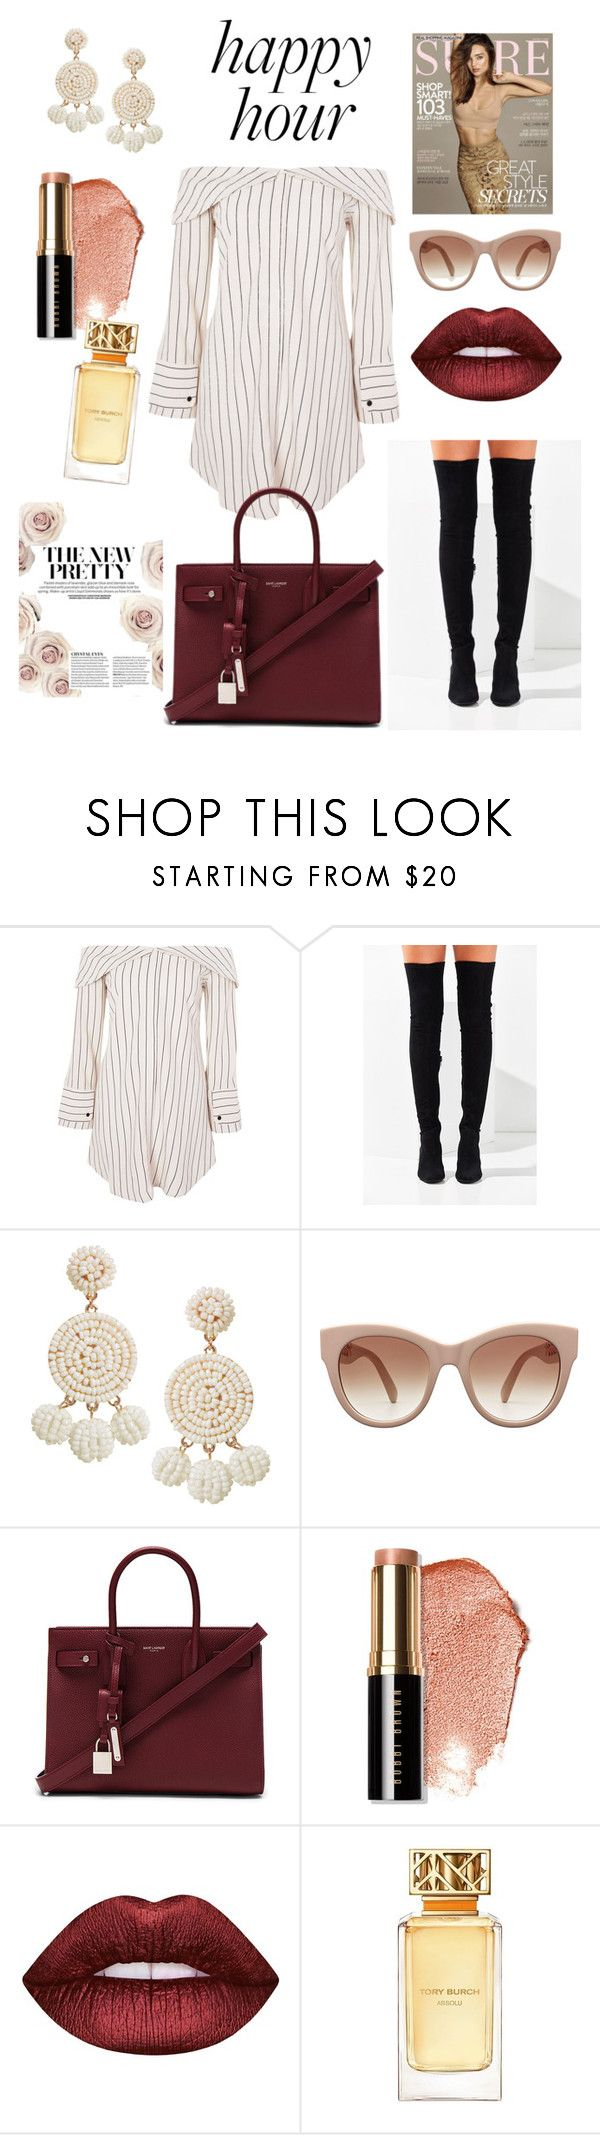 """My #HappyHour"" by montseperezp ❤ liked on Polyvore featuring Kerr®, Topshop, Jeffrey Campbell, Humble Chic, Yves Saint Laurent, Bobbi Brown Cosmetics, Lime Crime and Tory Burch"